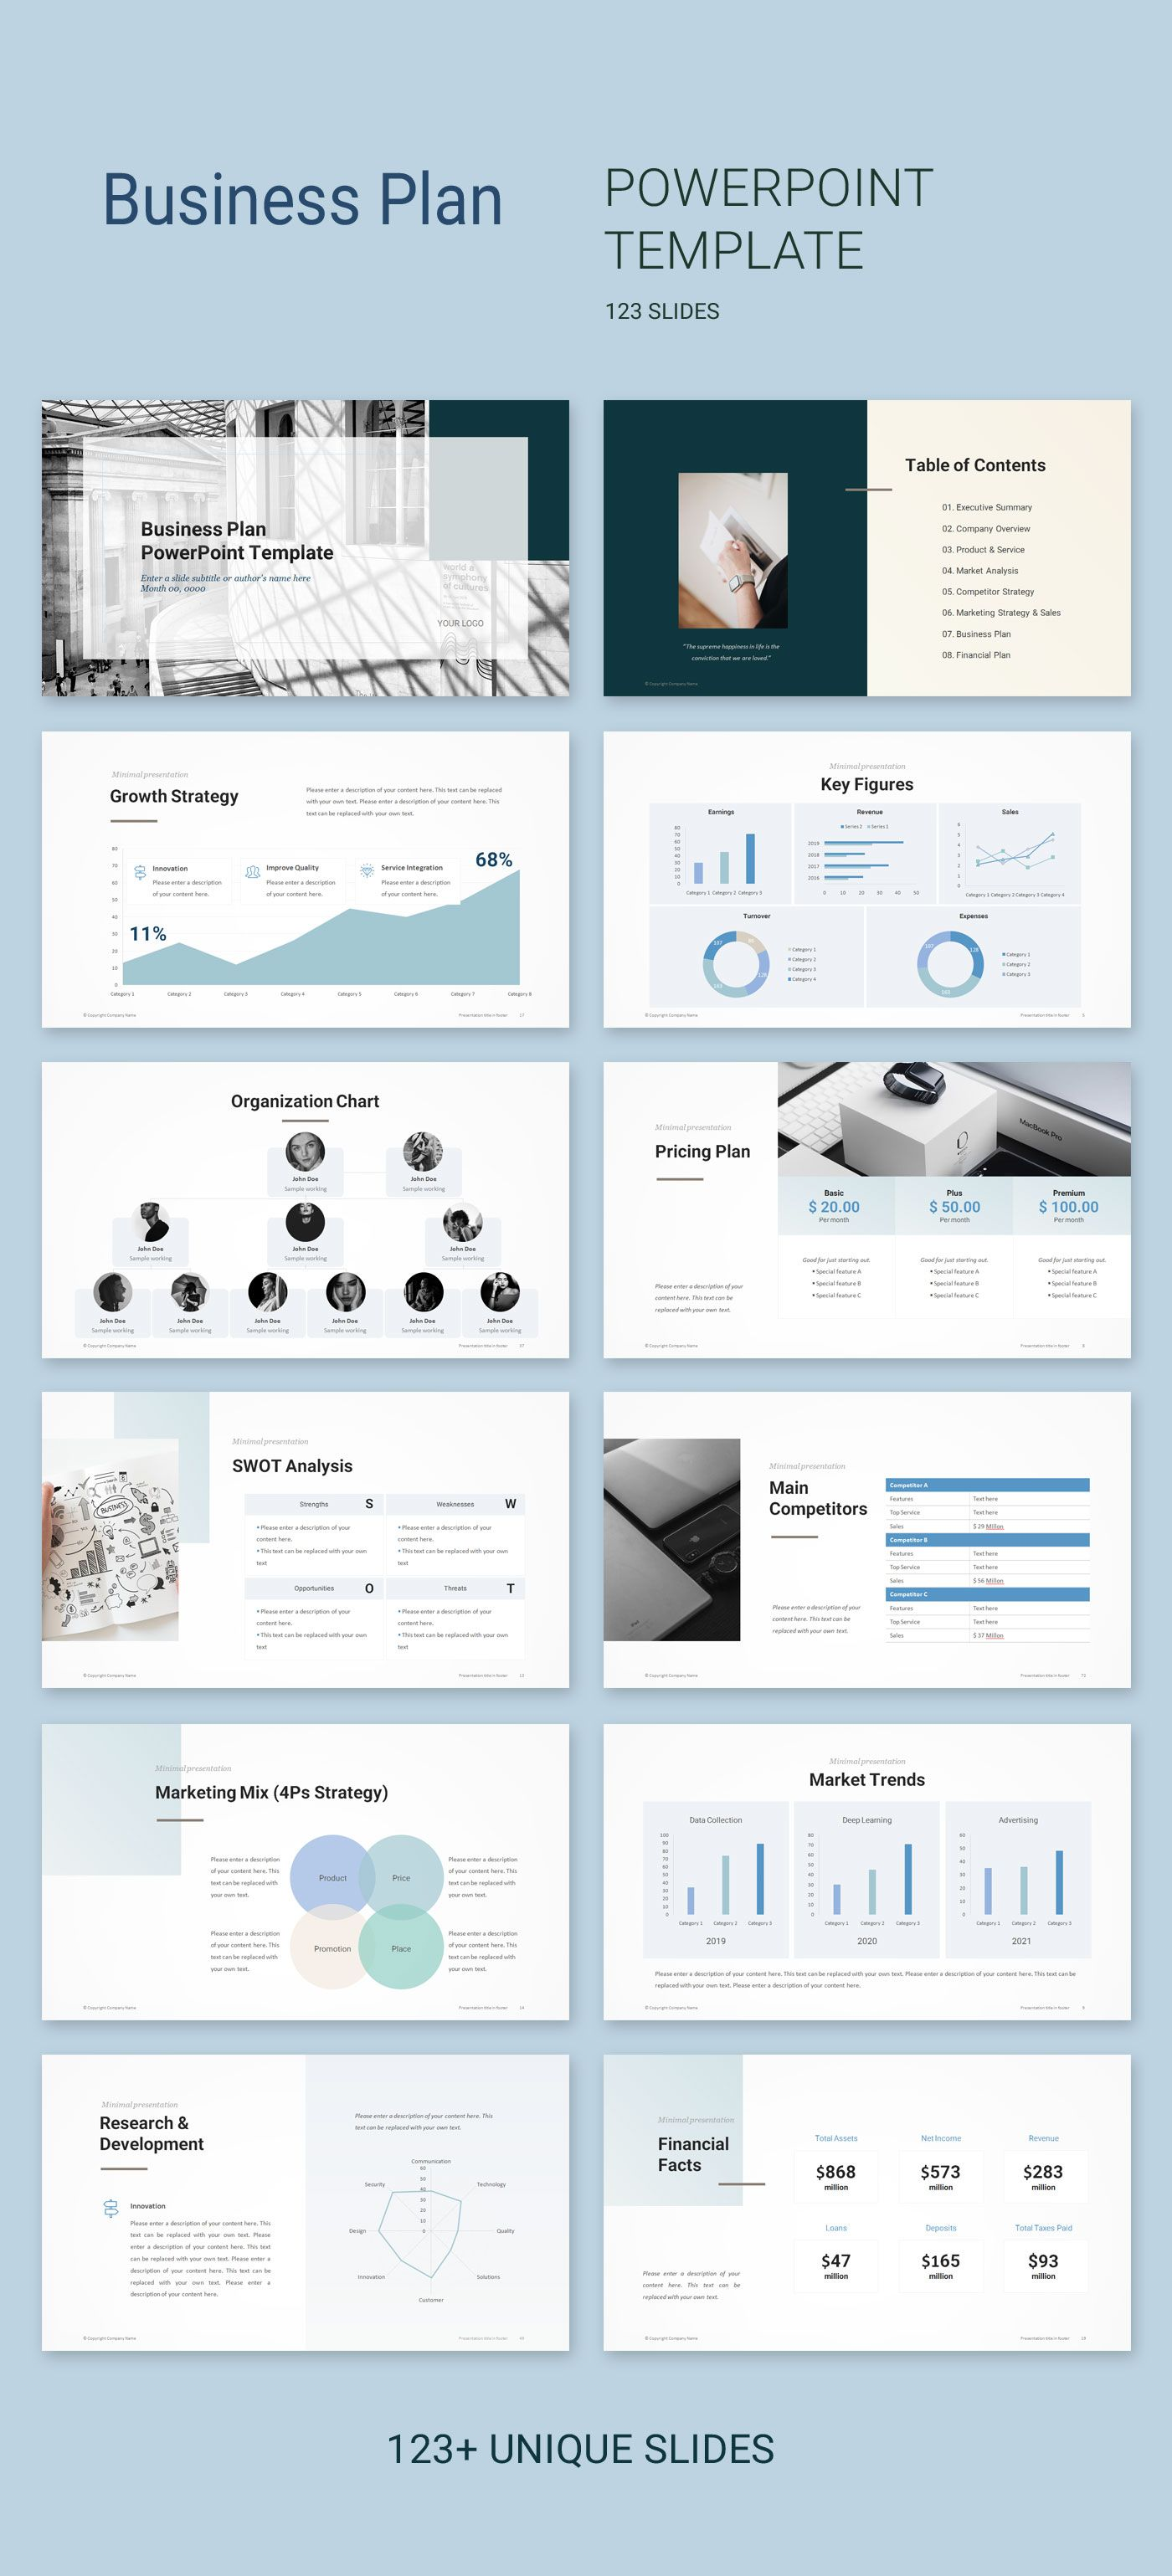 Business Plan Powerpoint Template Download Powerpoint Pptwear Business Plan Presentation Presentation Slides Design Powerpoint Presentation Design